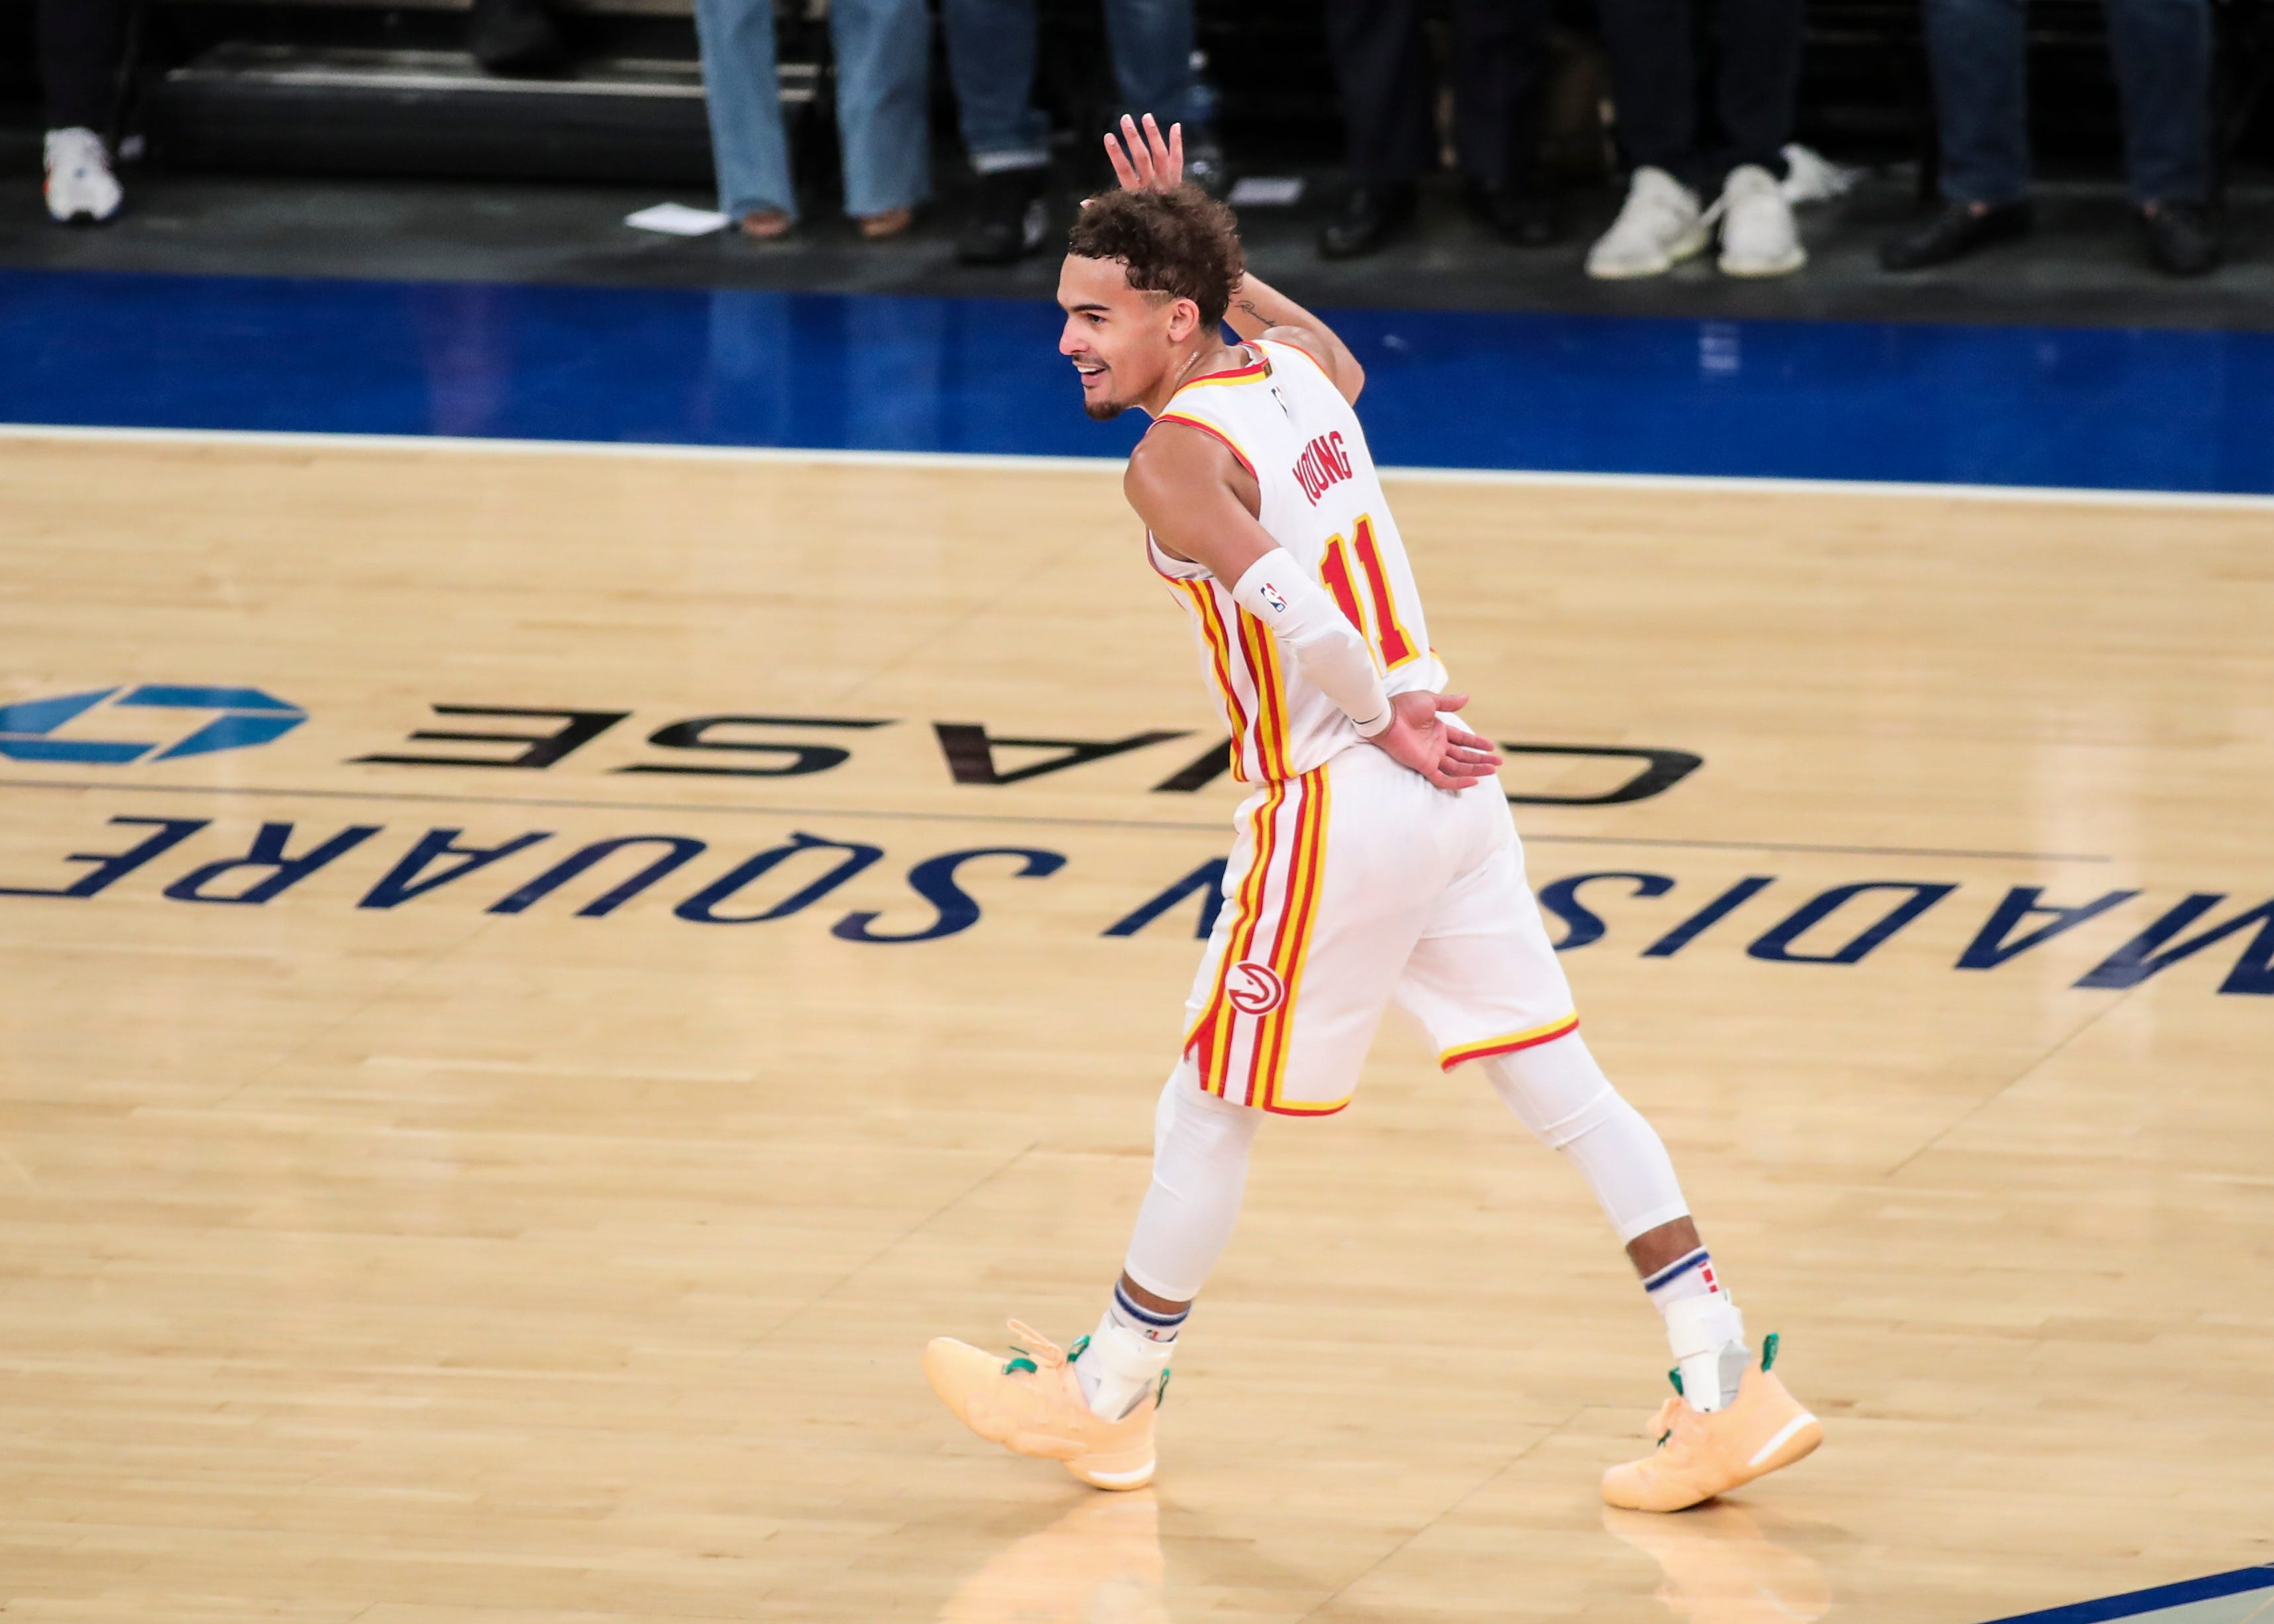 Opinion: Led in NBA playoffs by budding star Trae Young, the upstart Atlanta Hawks are here to stay